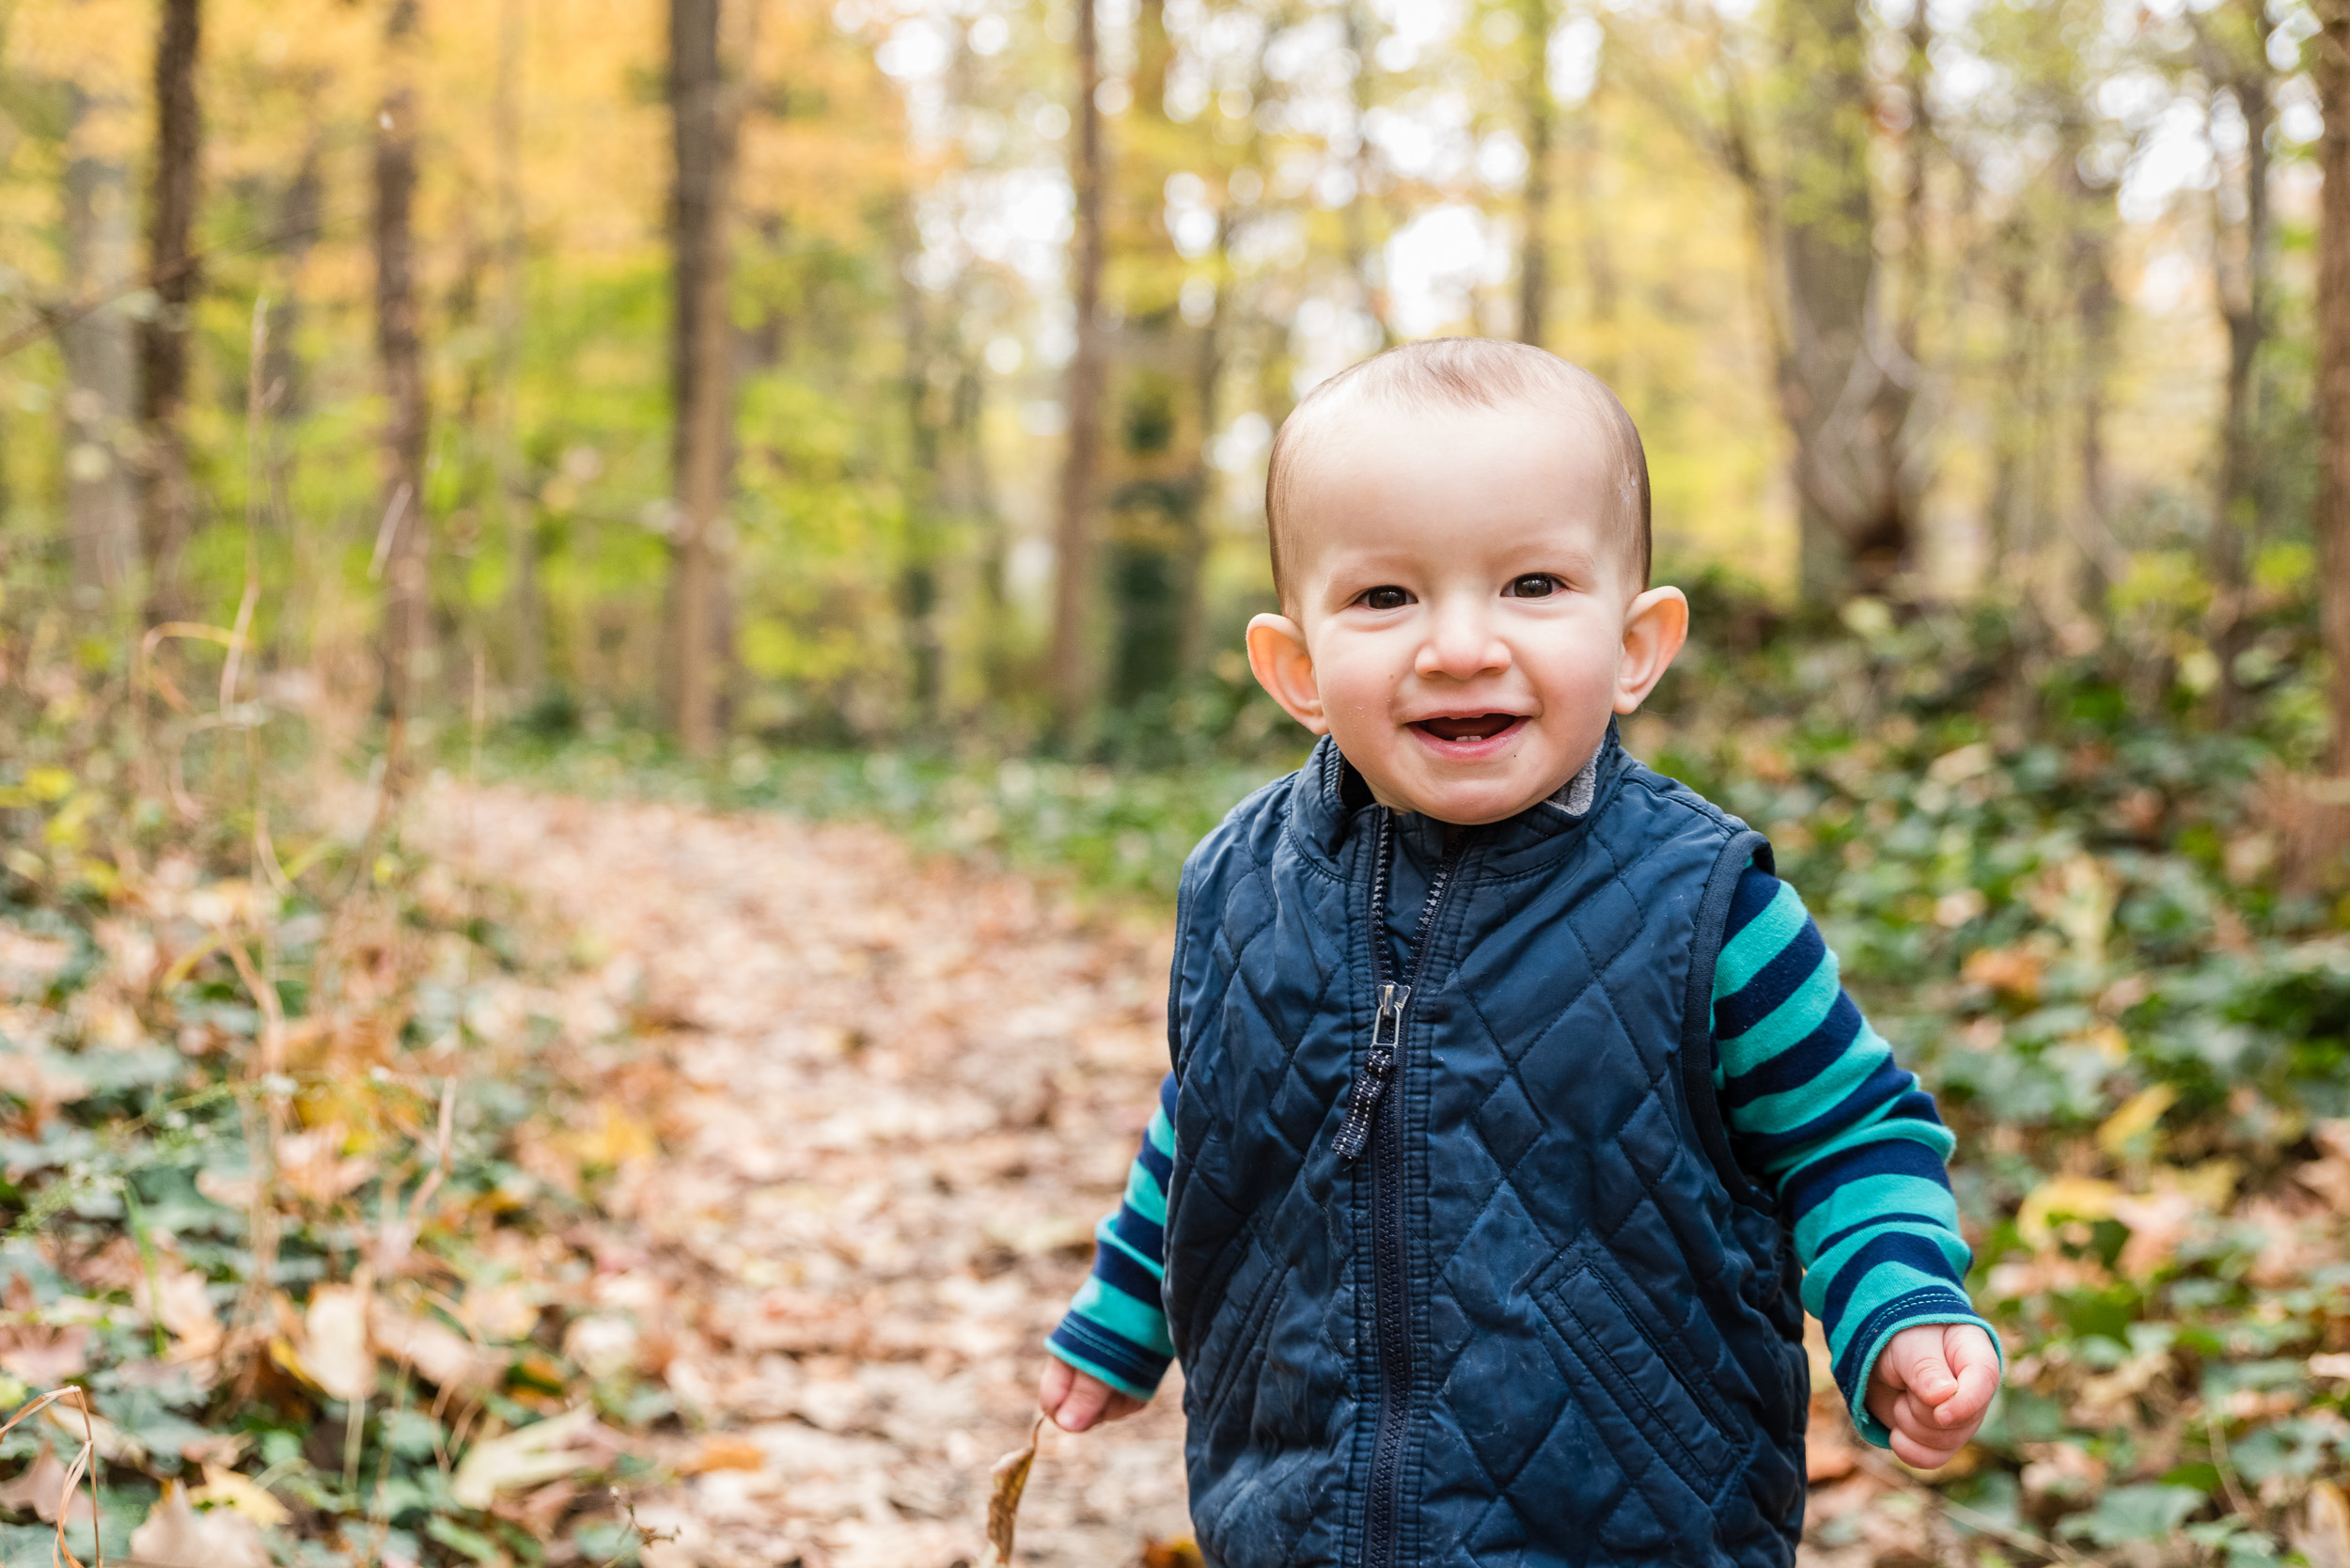 Toddler playing in fall leaves by Northern Virginia Family Photographer Nicole Sanchez